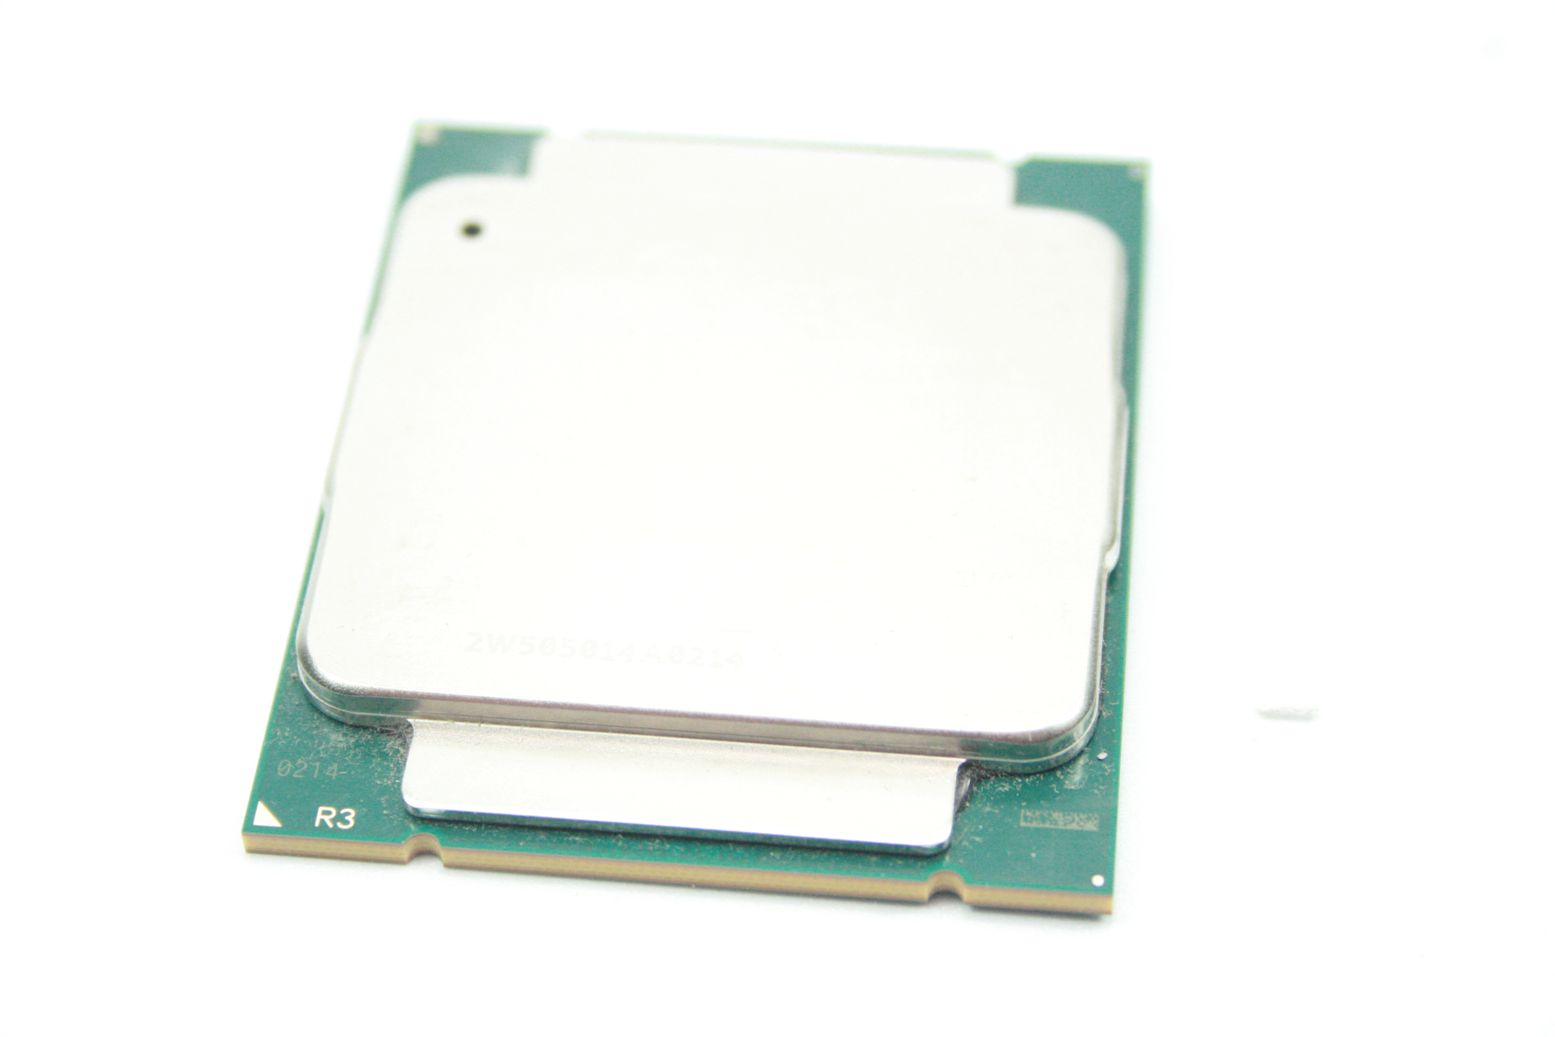 Intel Xeon E5-2696 v2 2.5 GHz 12-Core CPU SR19G